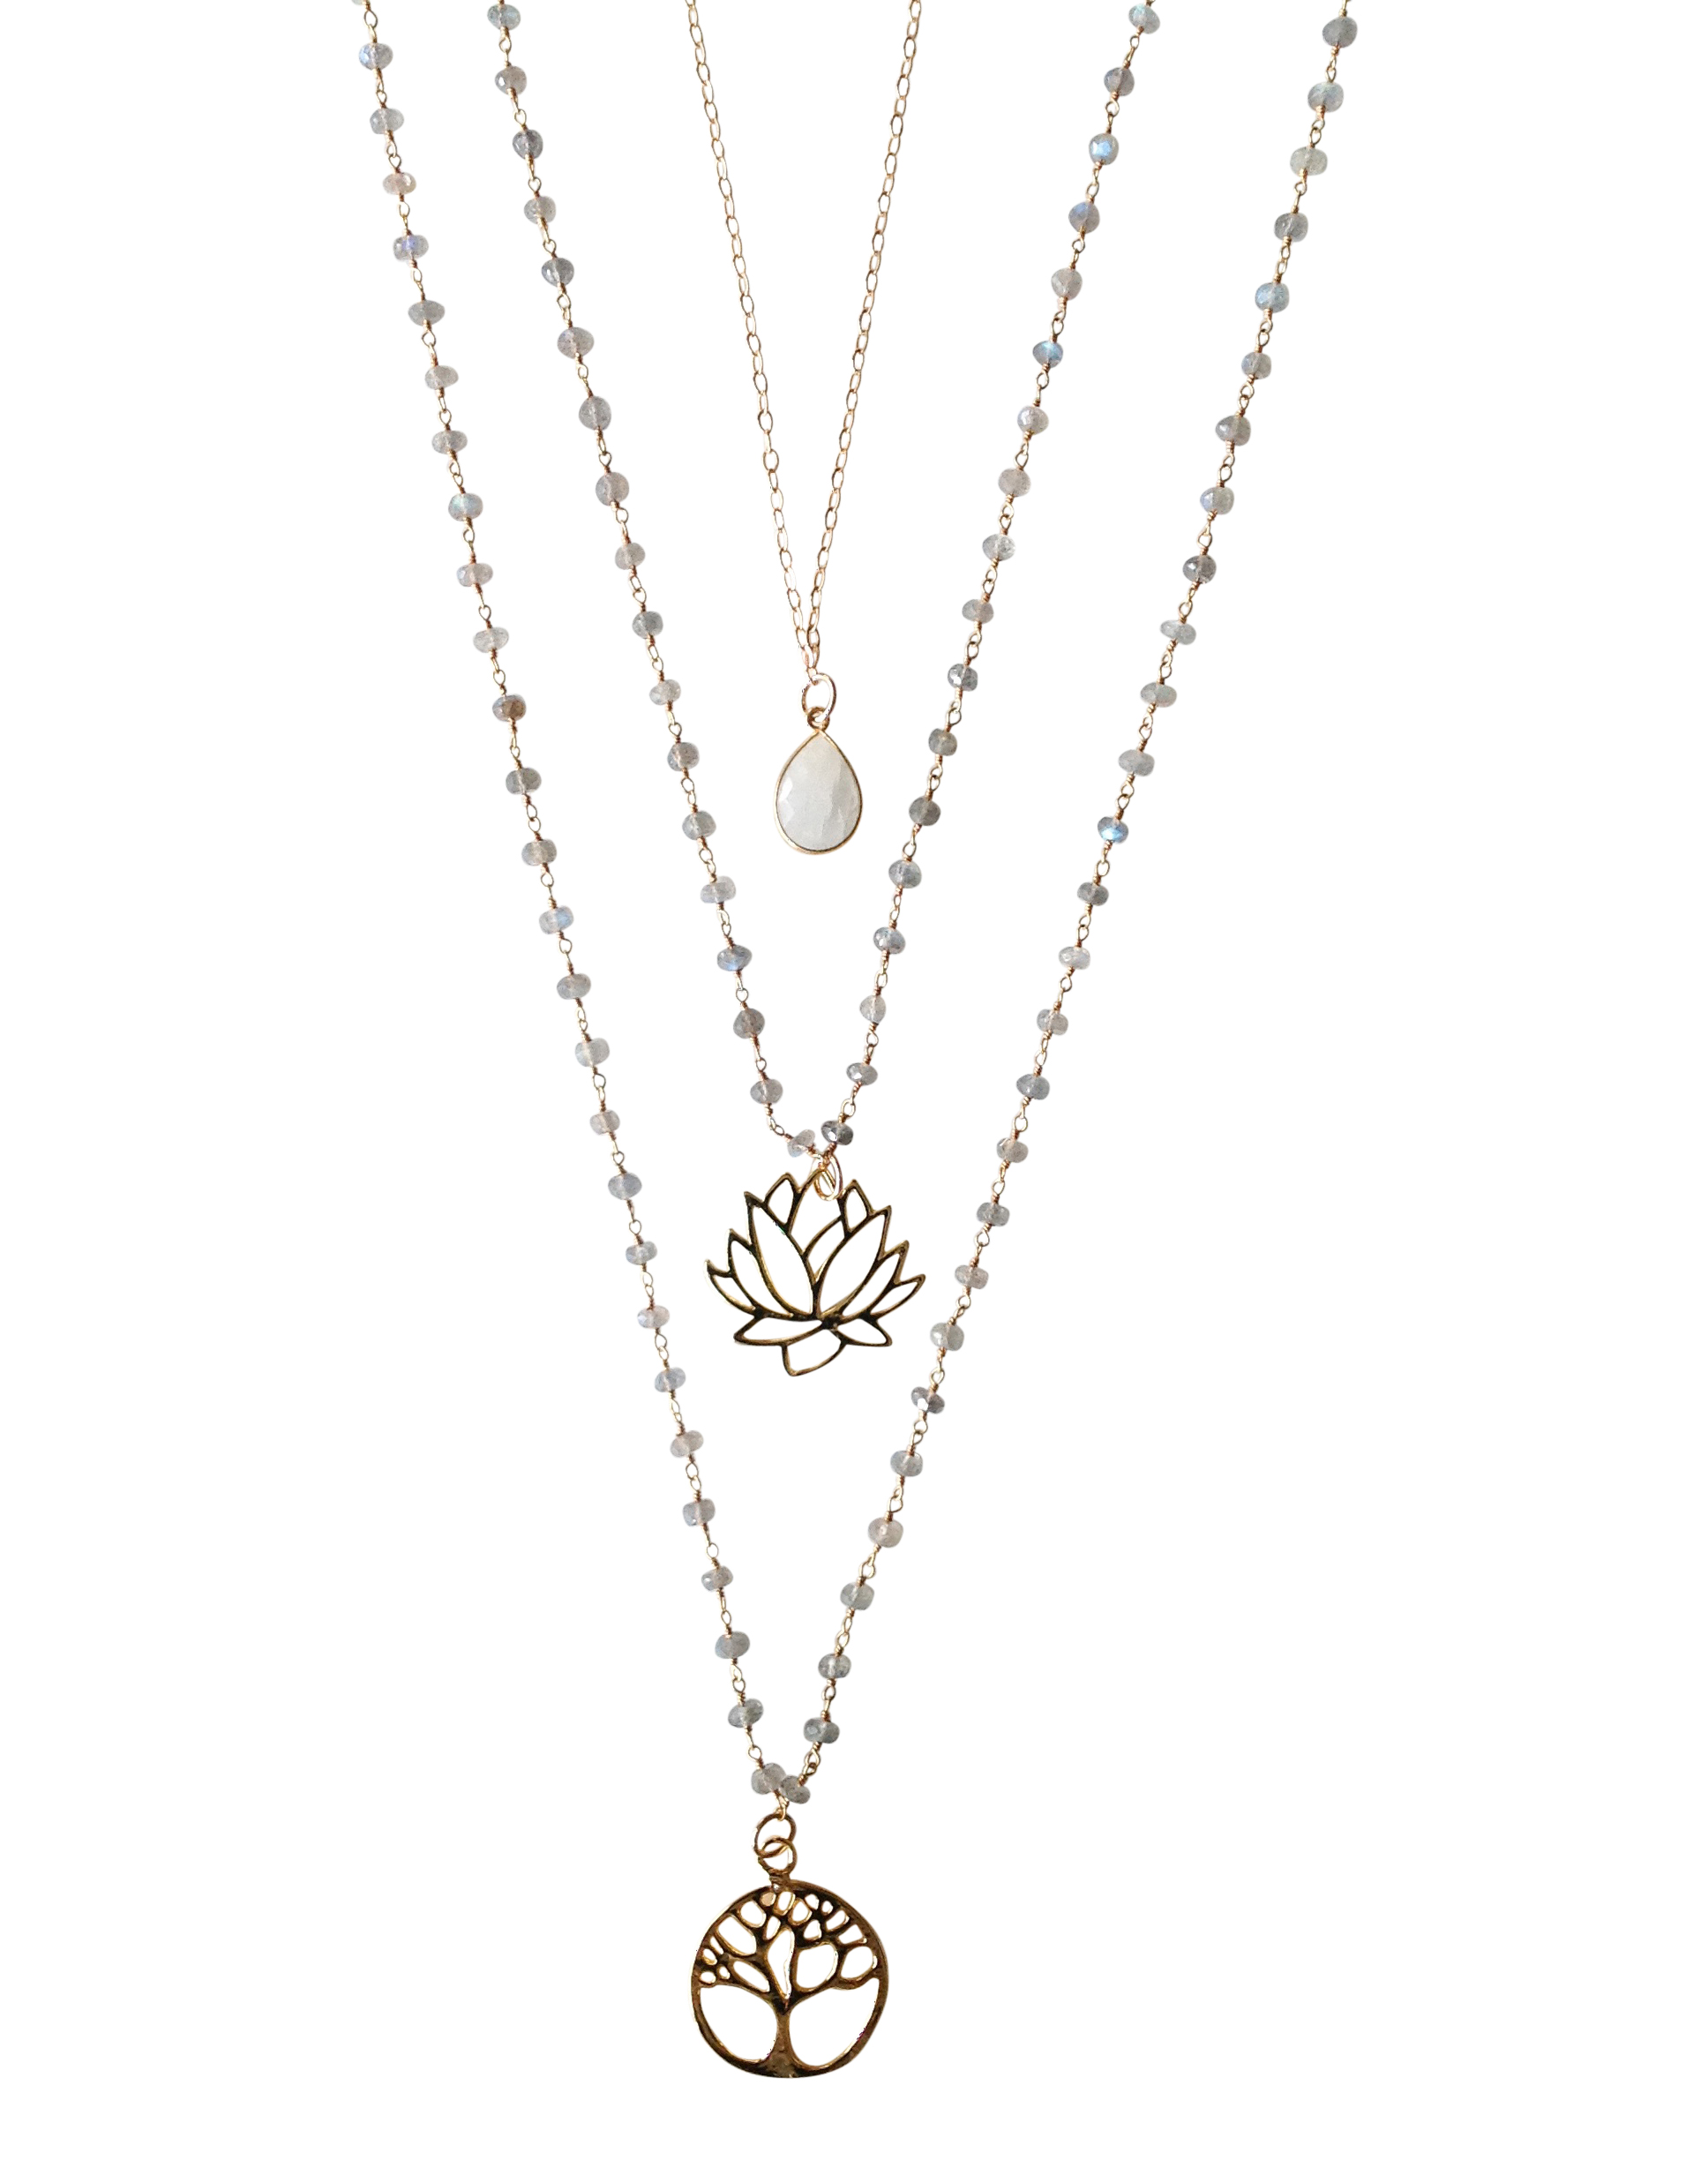 Layers of love meaning three meaningful necklaces involving the interconnections of all life and the lotus flower rising and blooming to achieve enlightenment izmirmasajfo